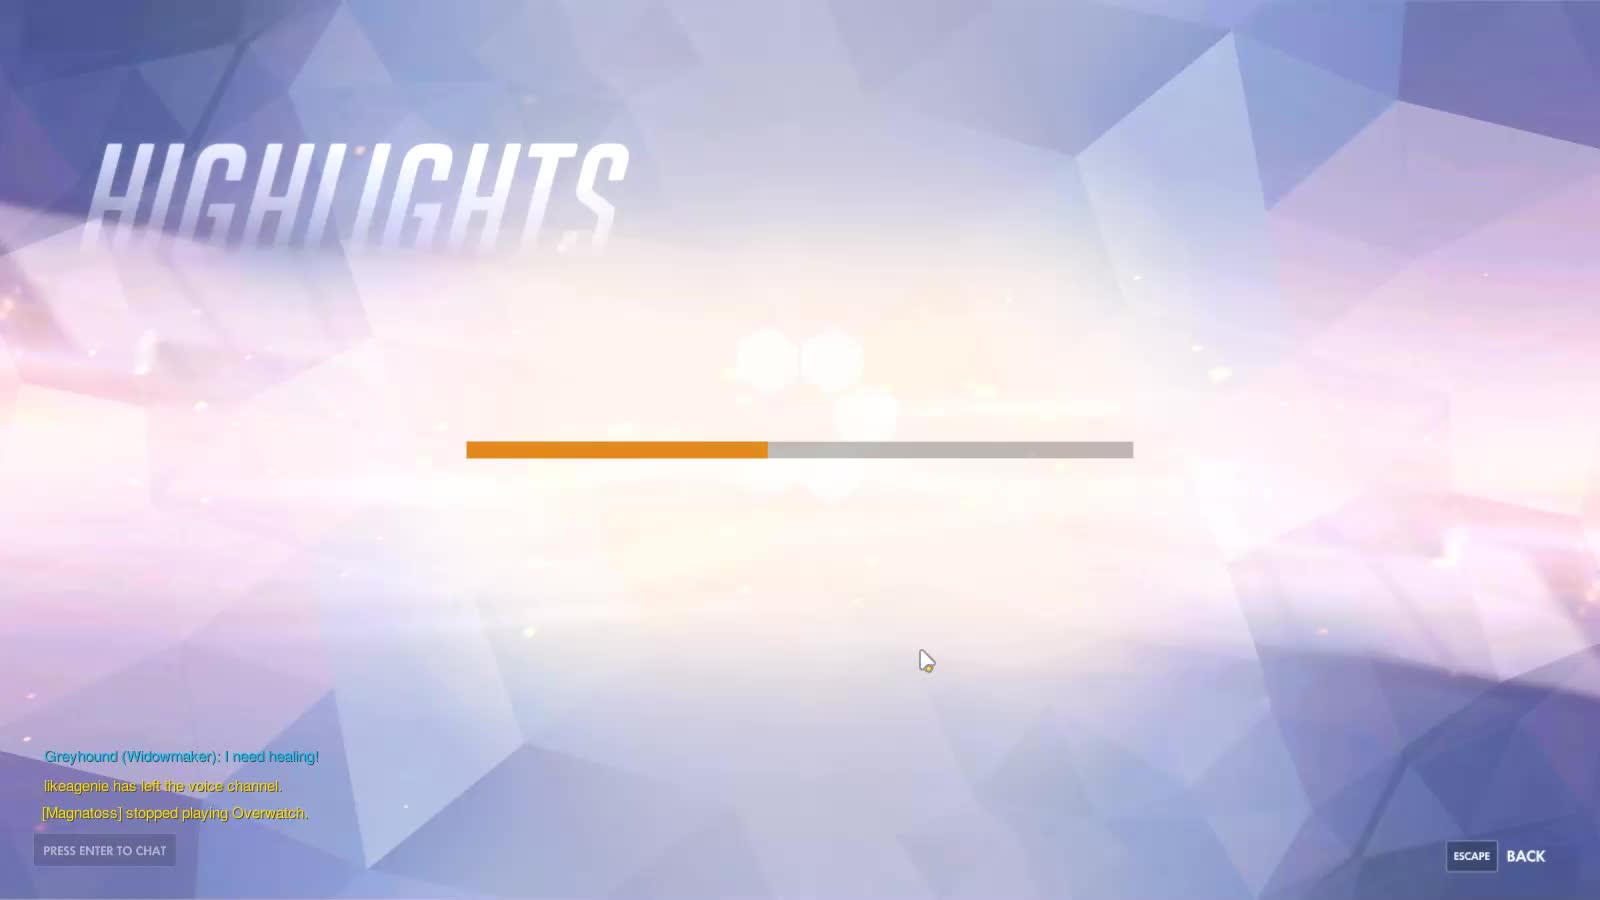 3v3, overwatch, widowmaker, funny play GIFs